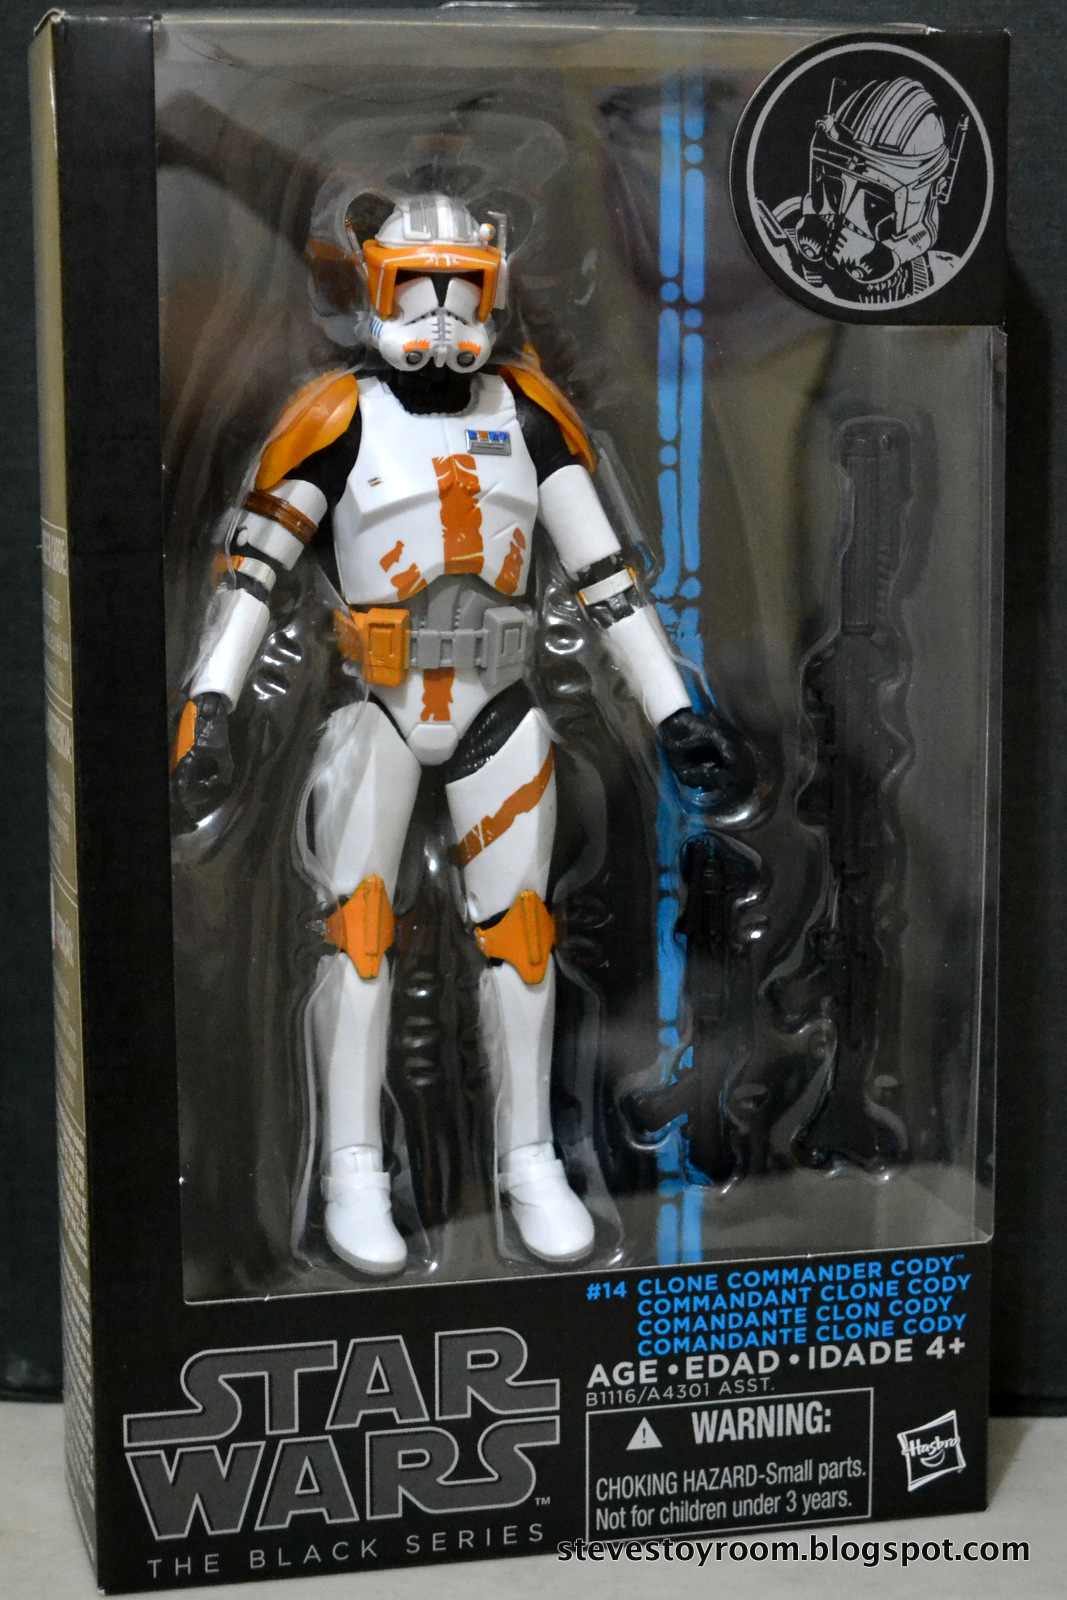 STAR WARS THE BLACK SERIES 6 INCH FIGURE #14 CLONE TROOPER ORANGE BOX